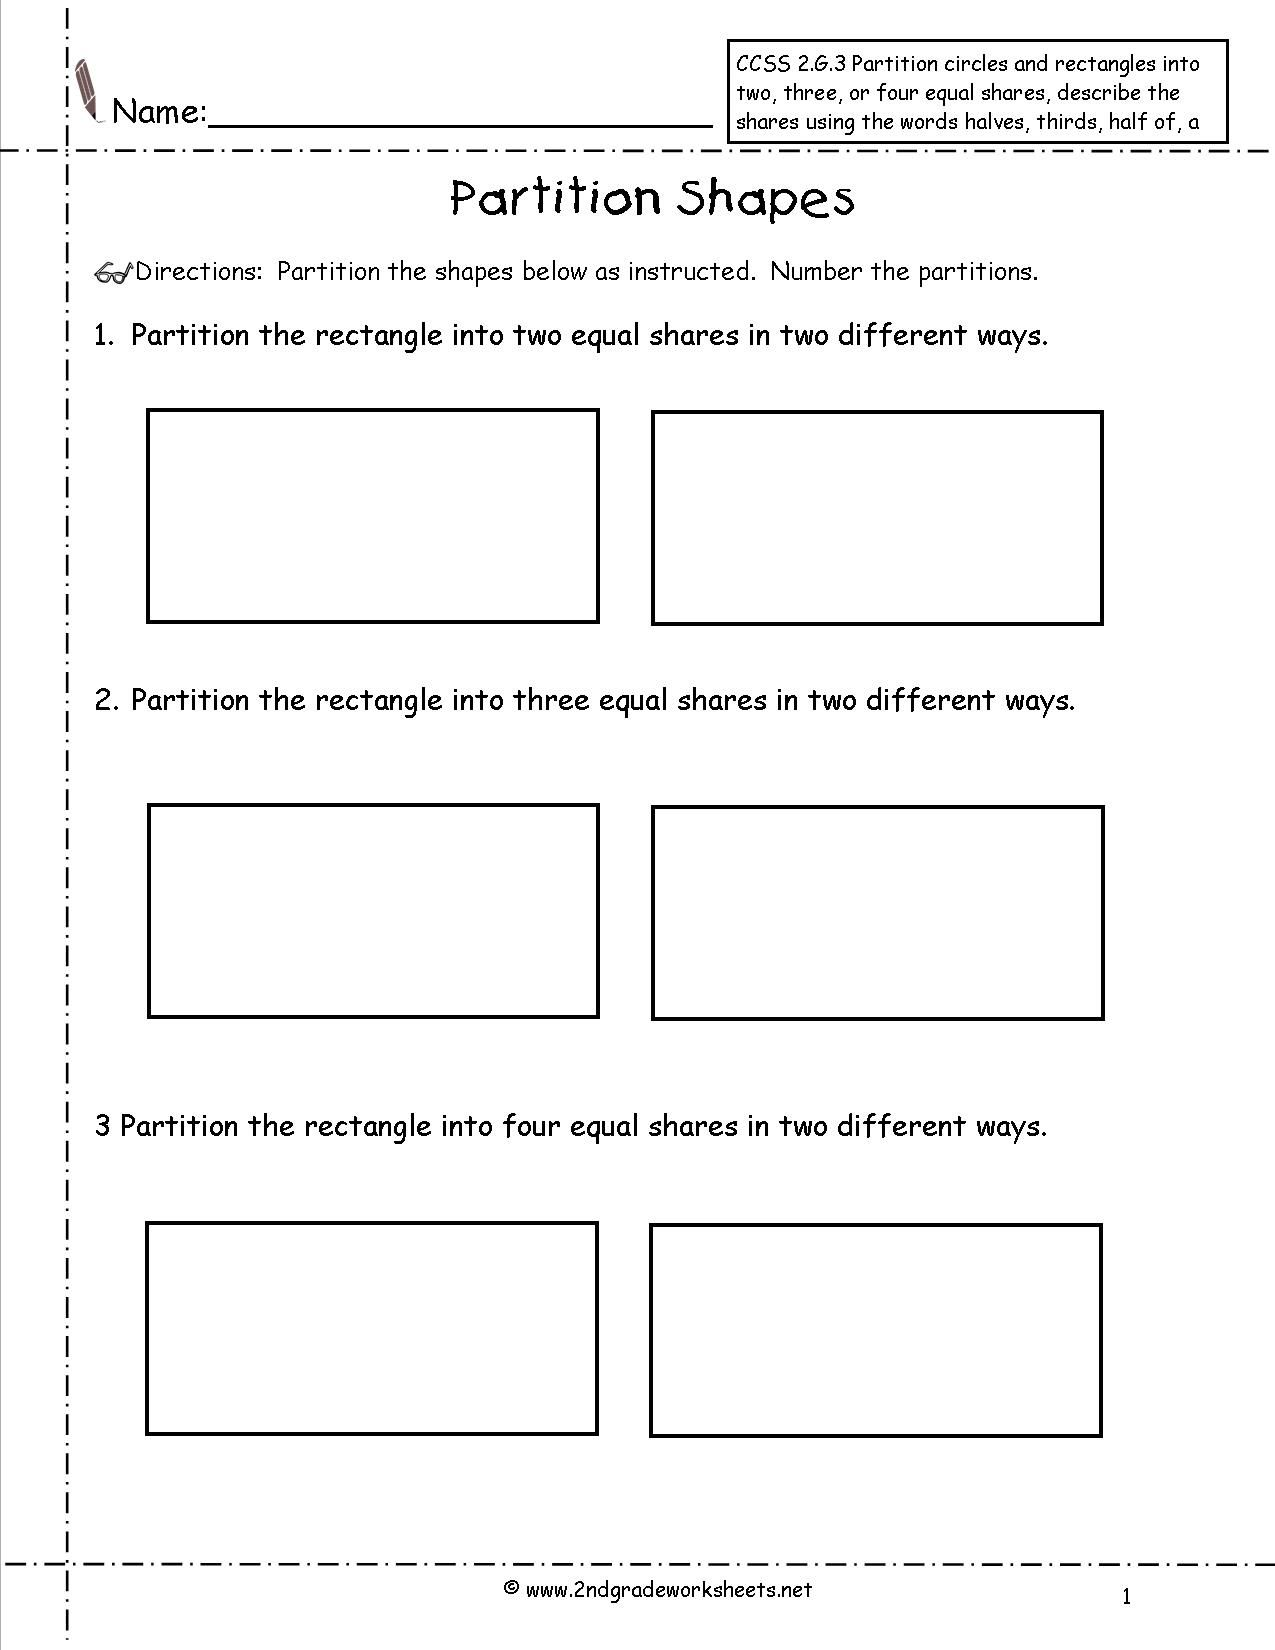 Ccss 2 G 3 Worksheets Partition Shapes Geometry Worksheets 2nd Grade Worksheets Shapes Worksheets